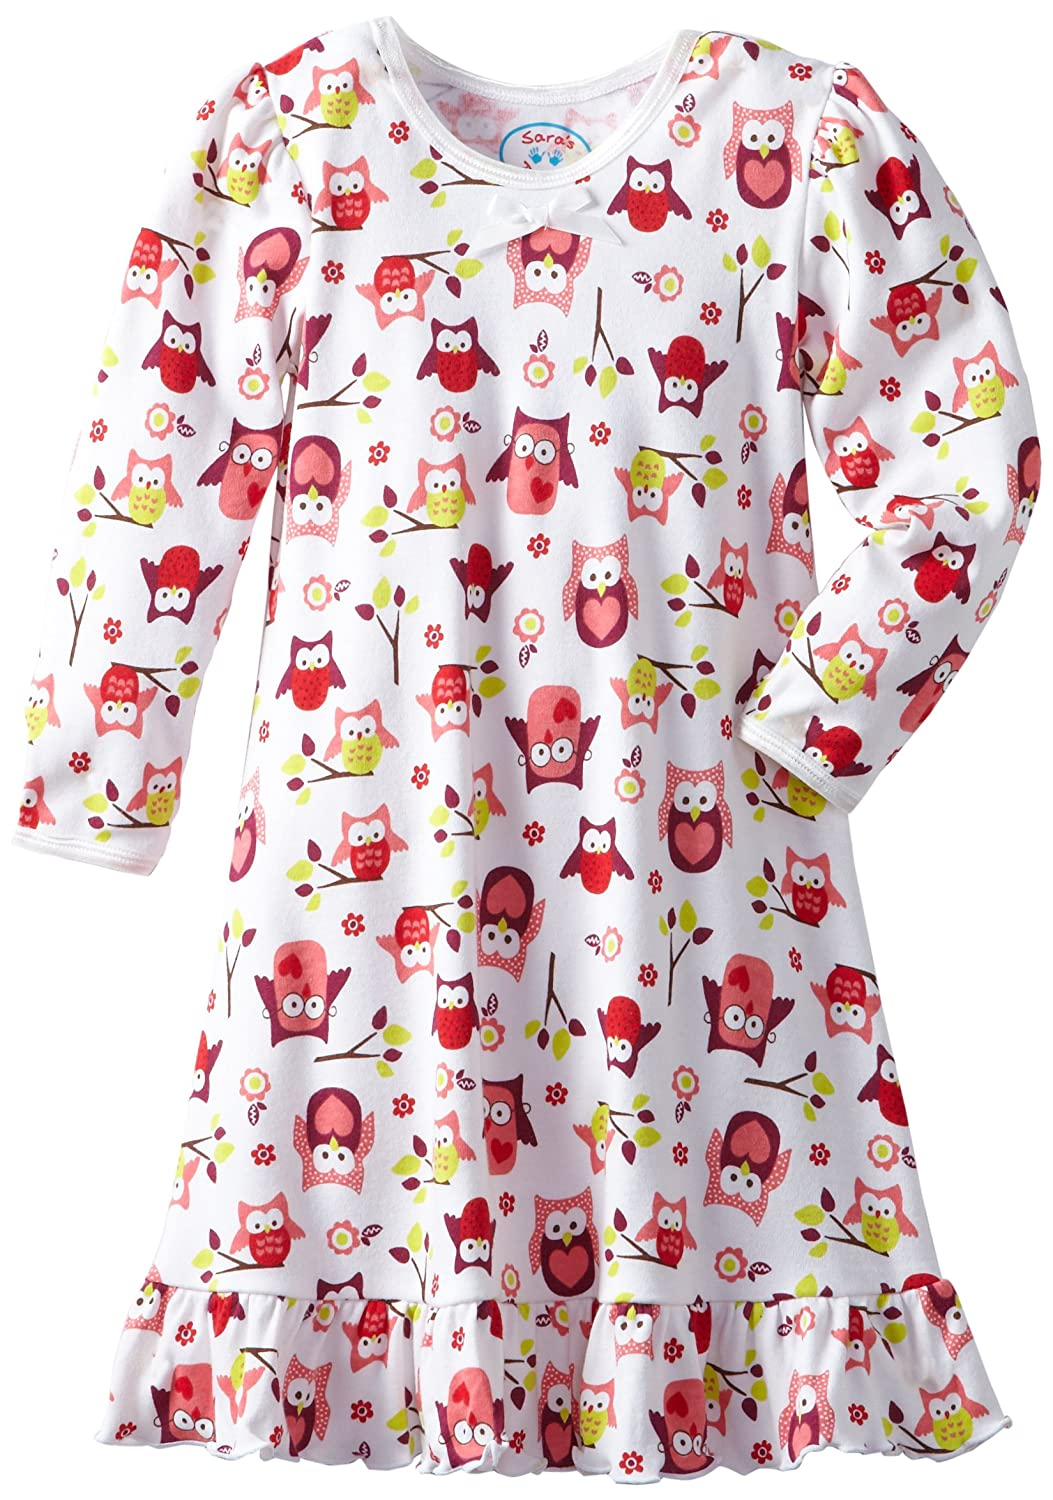 5 Saras Prints Little Girls Puff Sleeve Nightgown Wise Old Owl